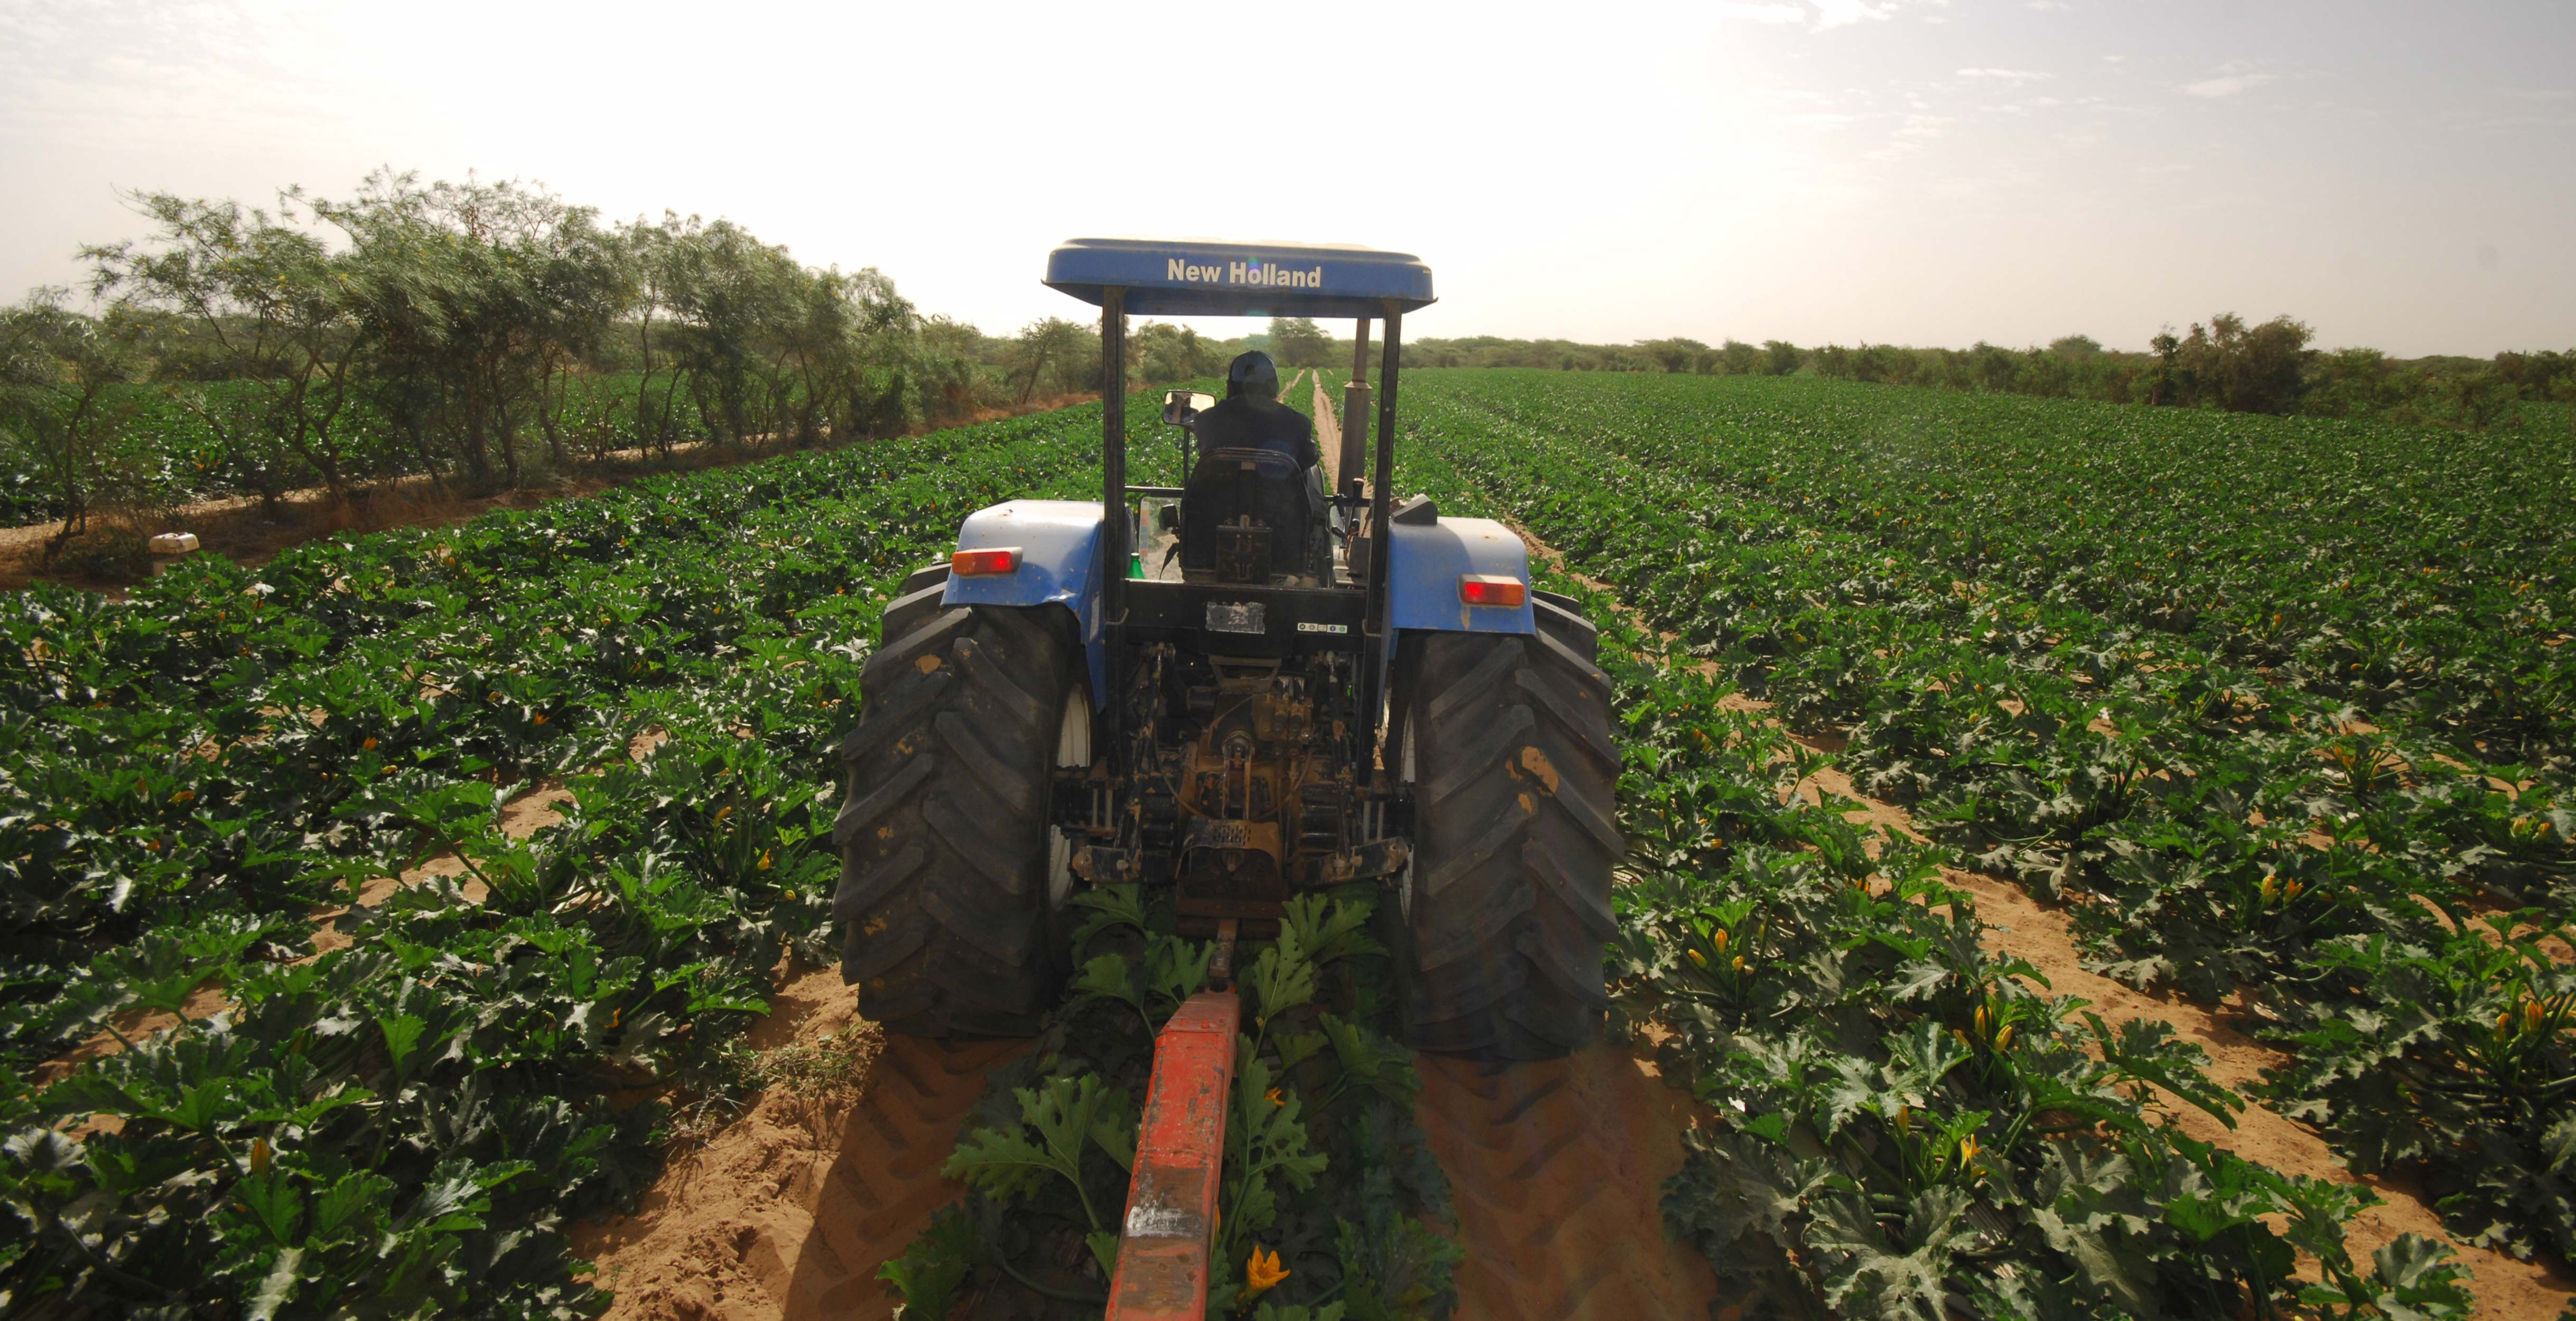 Photograph of Courgette plants growing on the Barfoots Senegal farm SCL